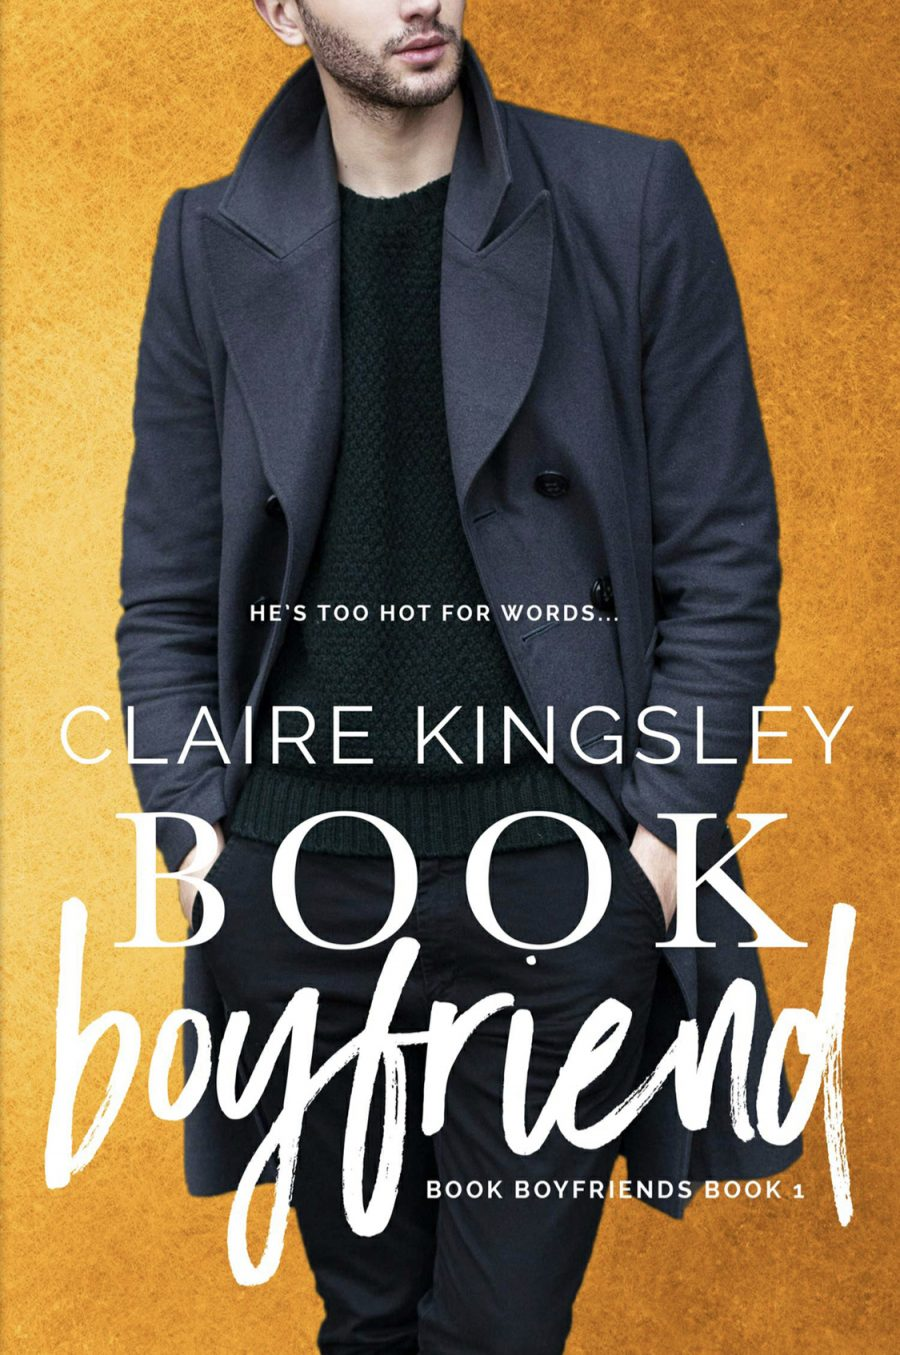 Book Boyfriend by Claire Kingsley - A Book Review #Contemporary #ContemporaryRomance #HEA #StandAlone #KindleUnlimited #KU #4Stars